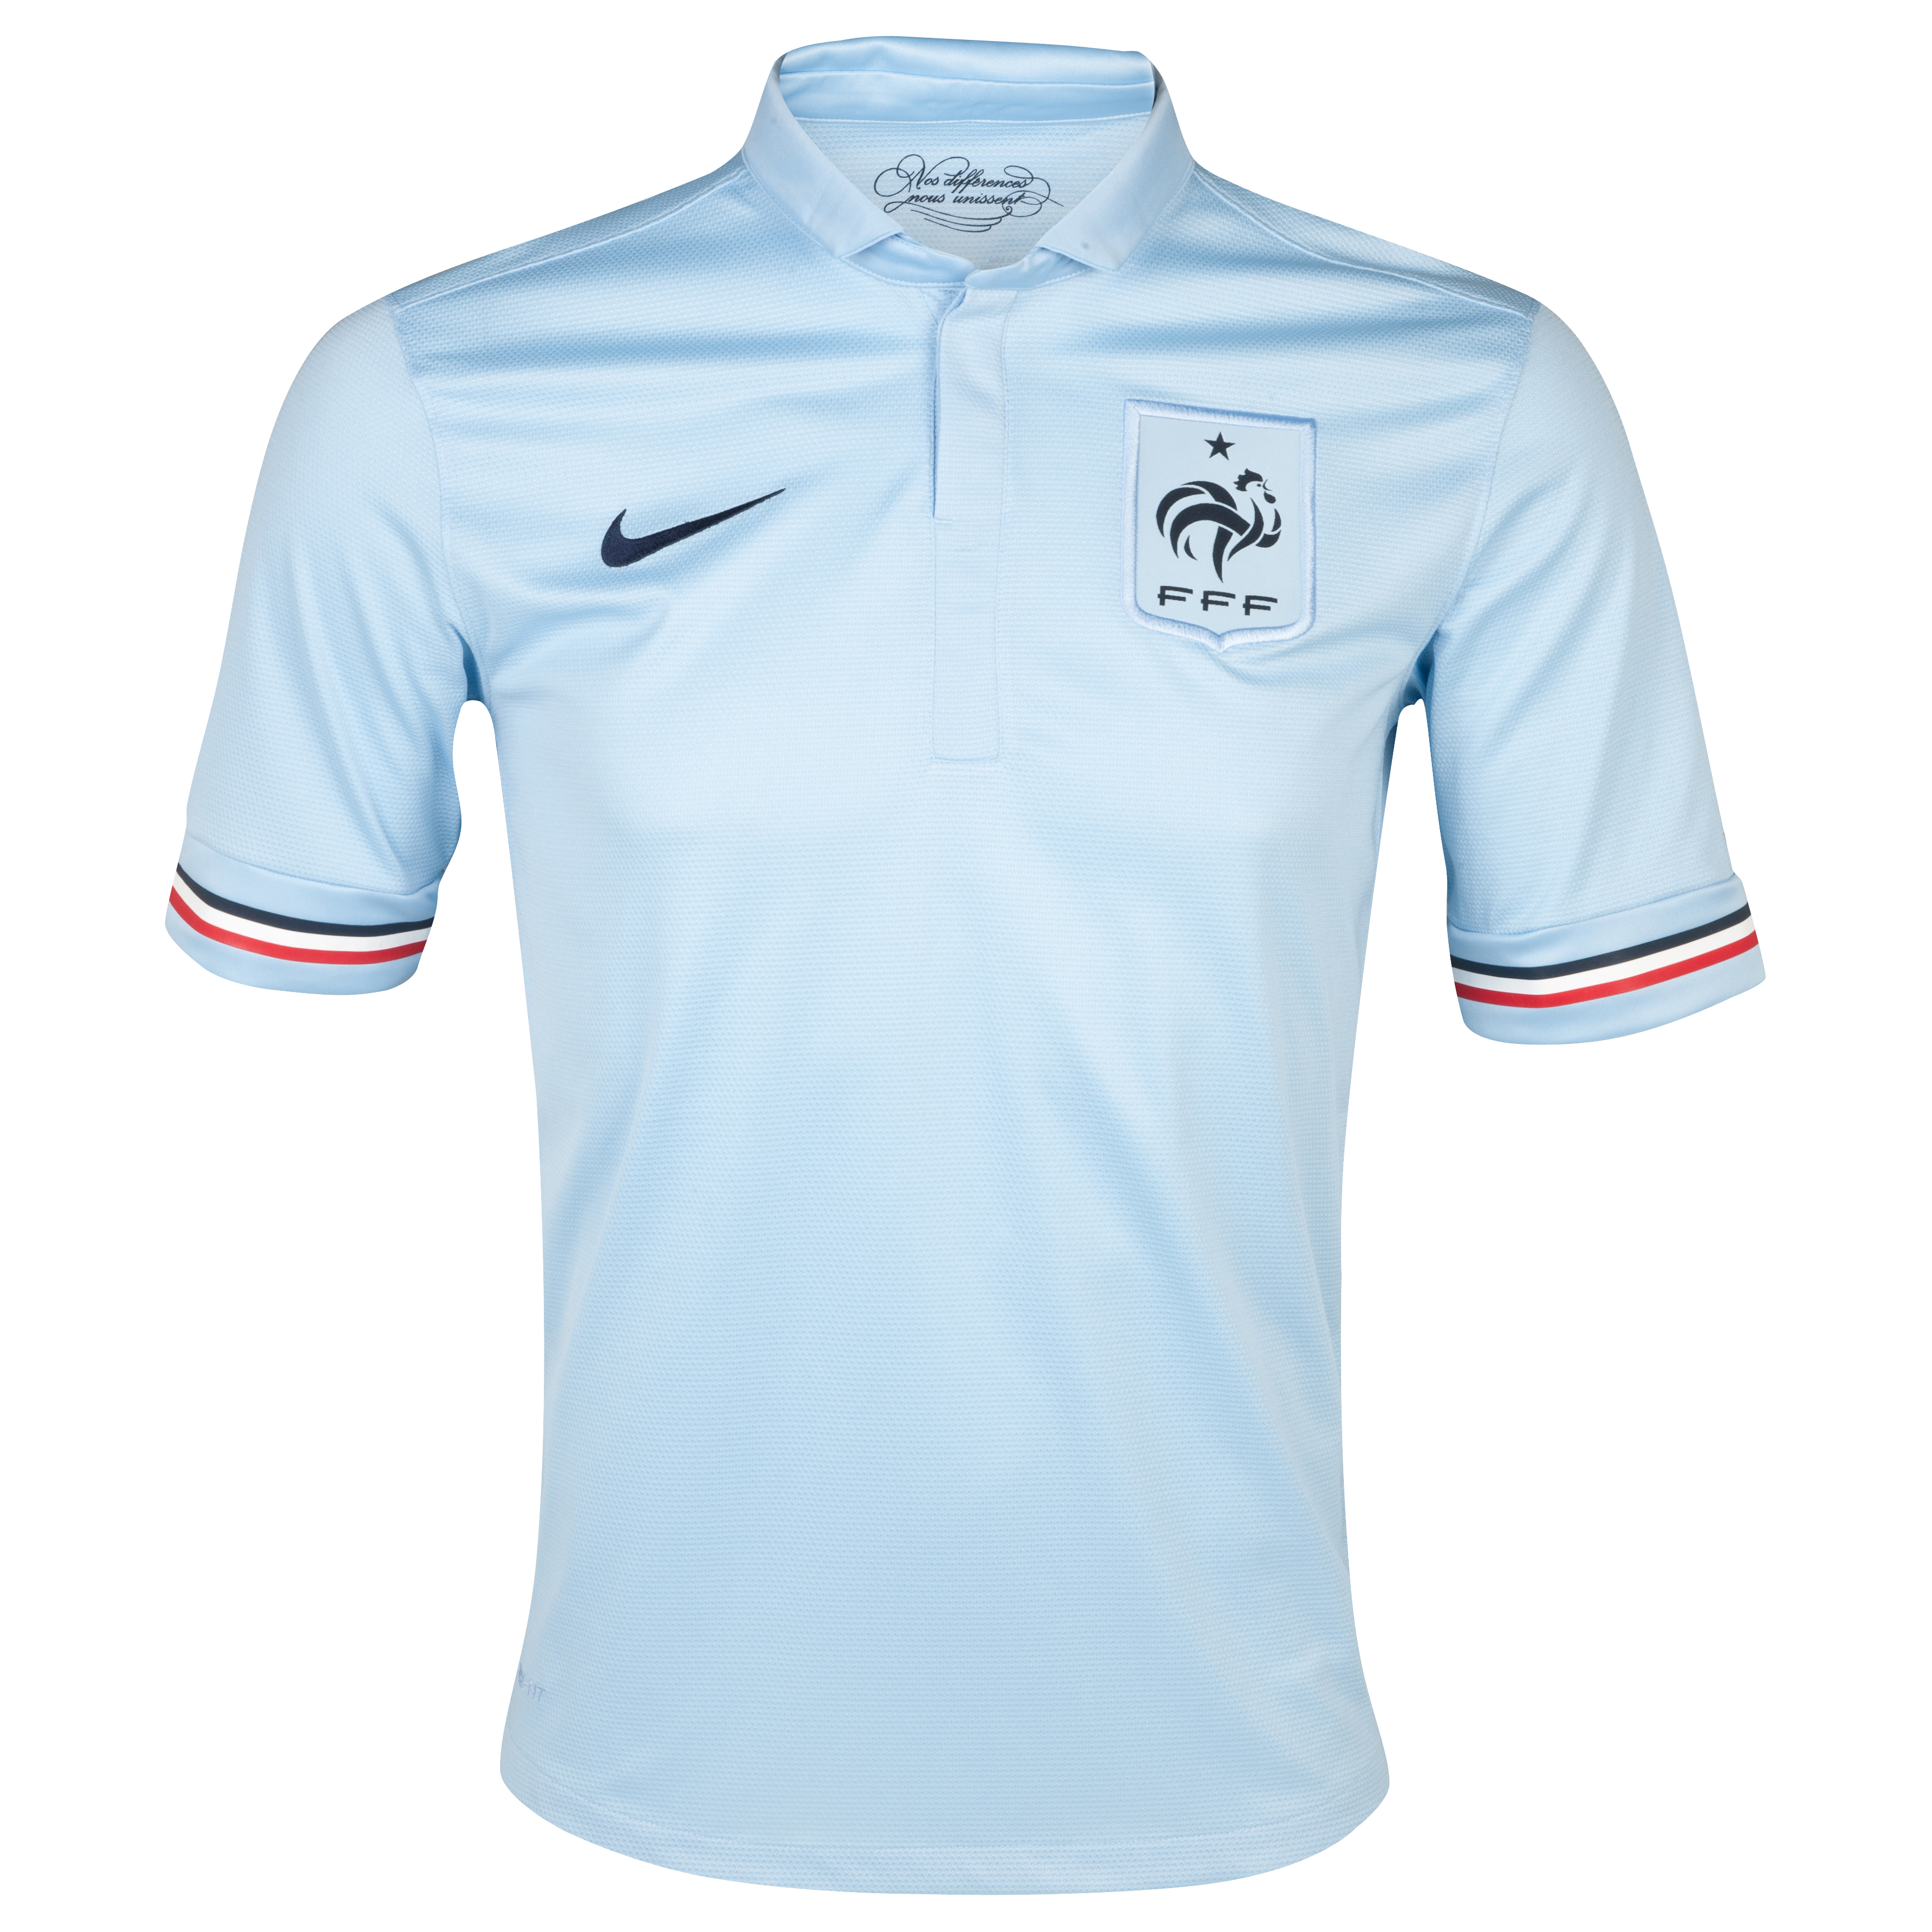 France Away Shirt 2013/14 - Youths